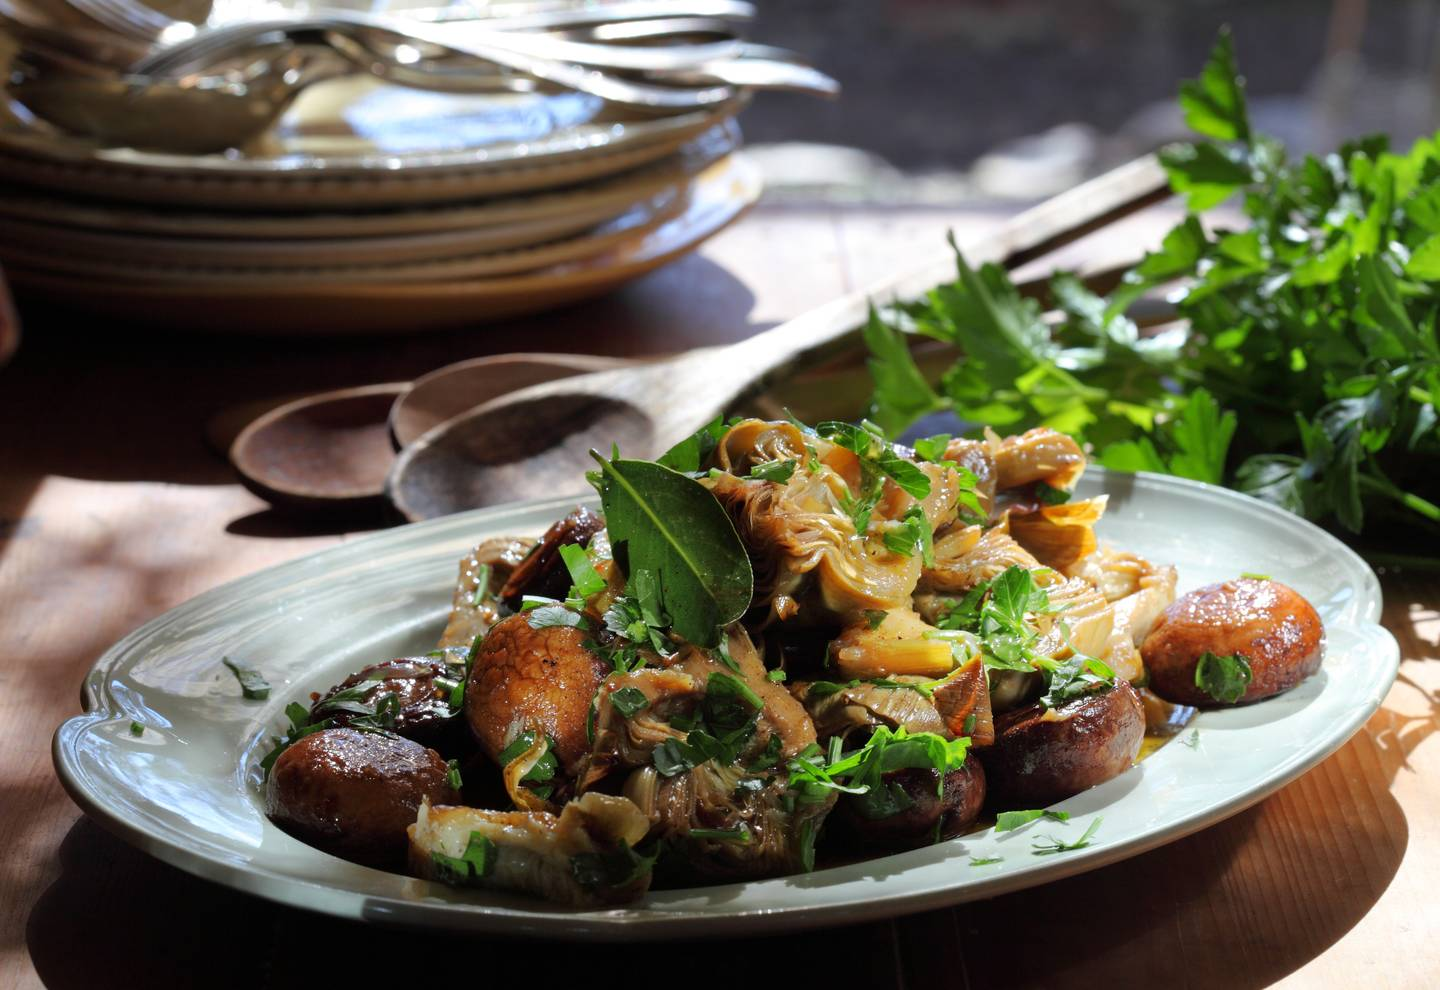 Artichokes and mushrooms braised in verjuice and extra virgin olive oil